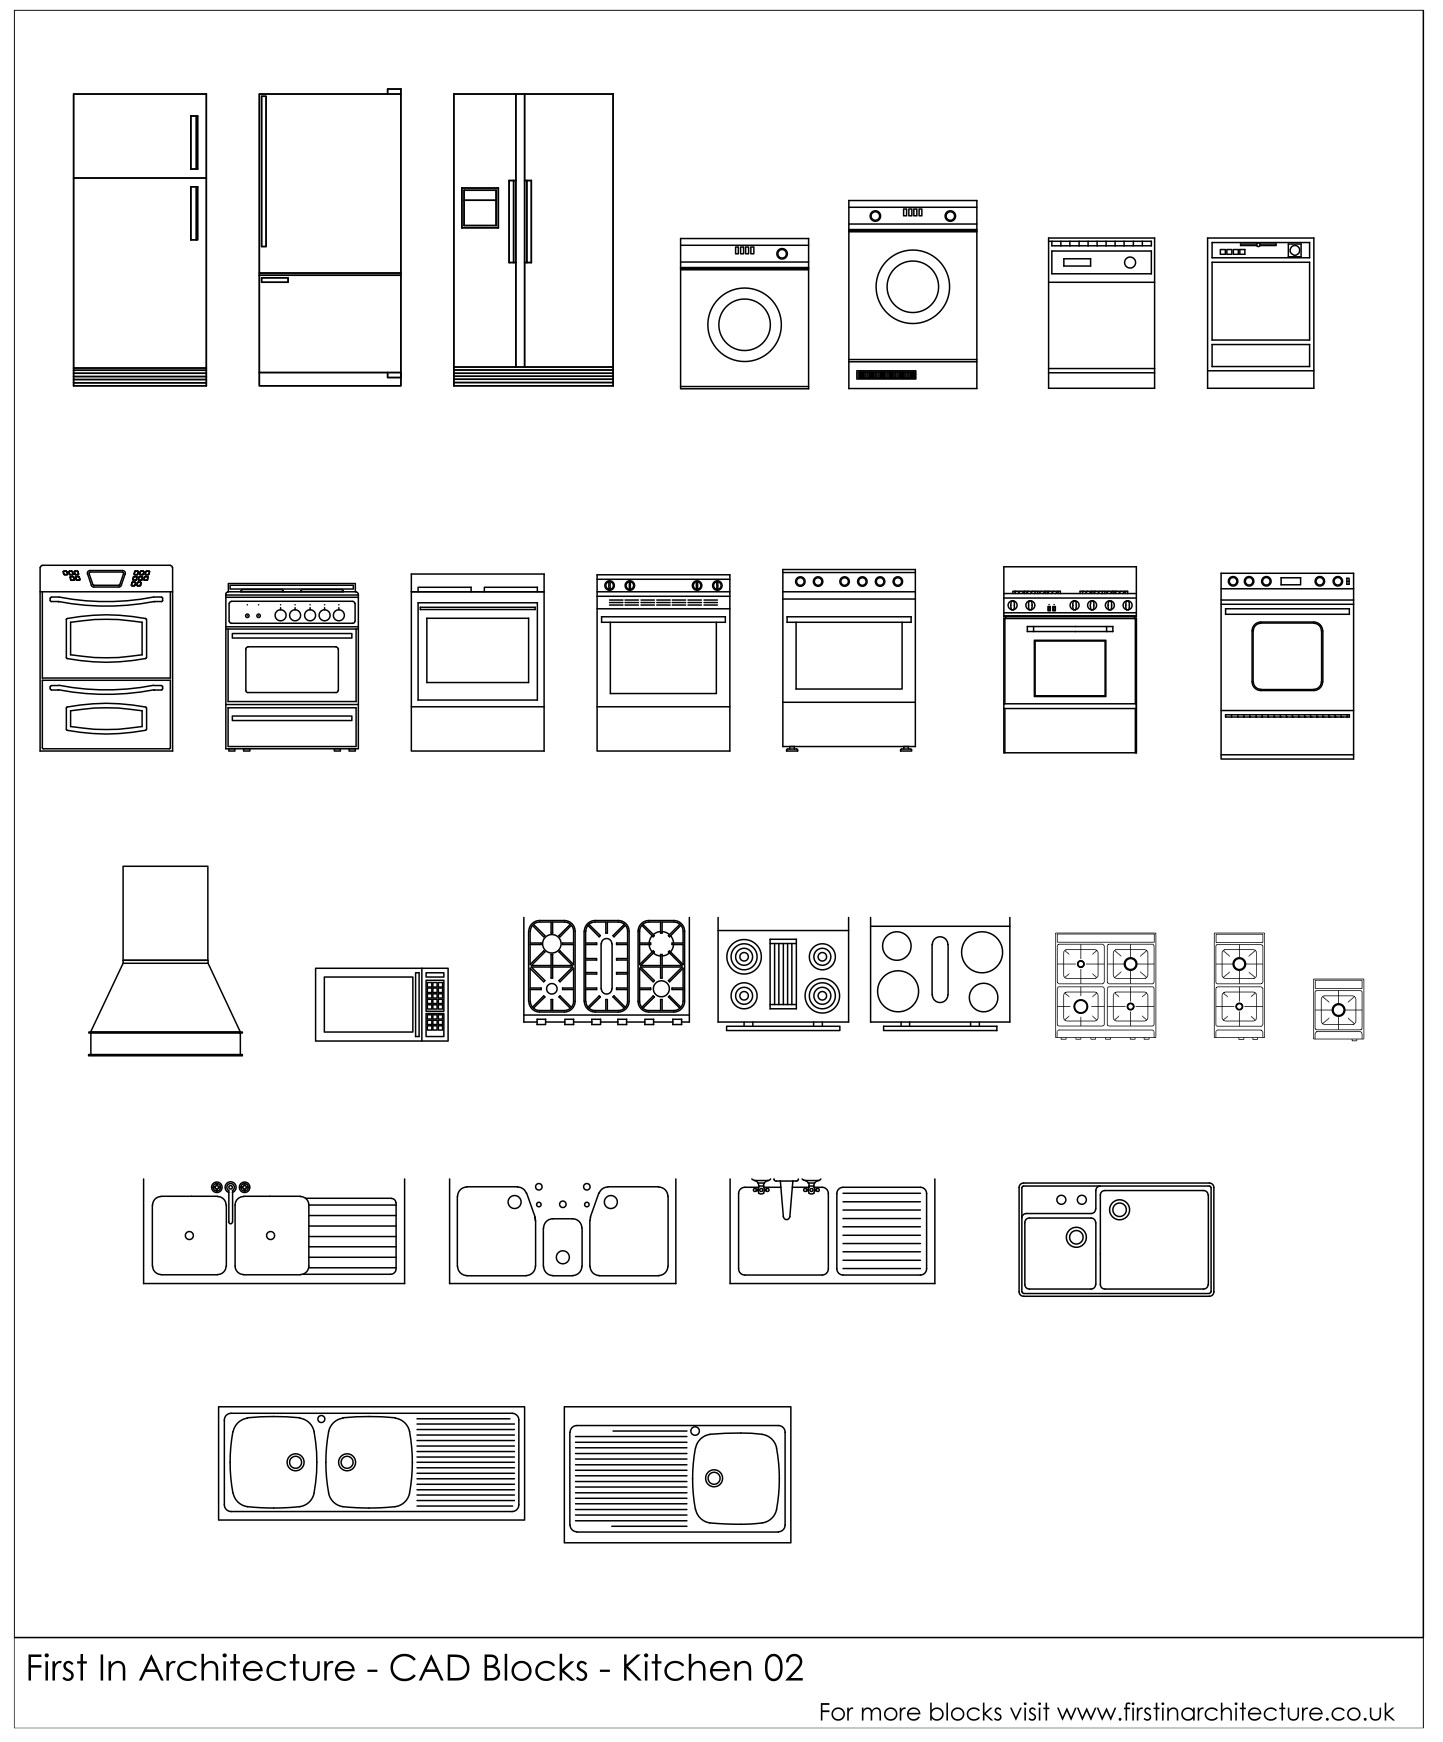 FIA Kitchen Cad Blocks 02